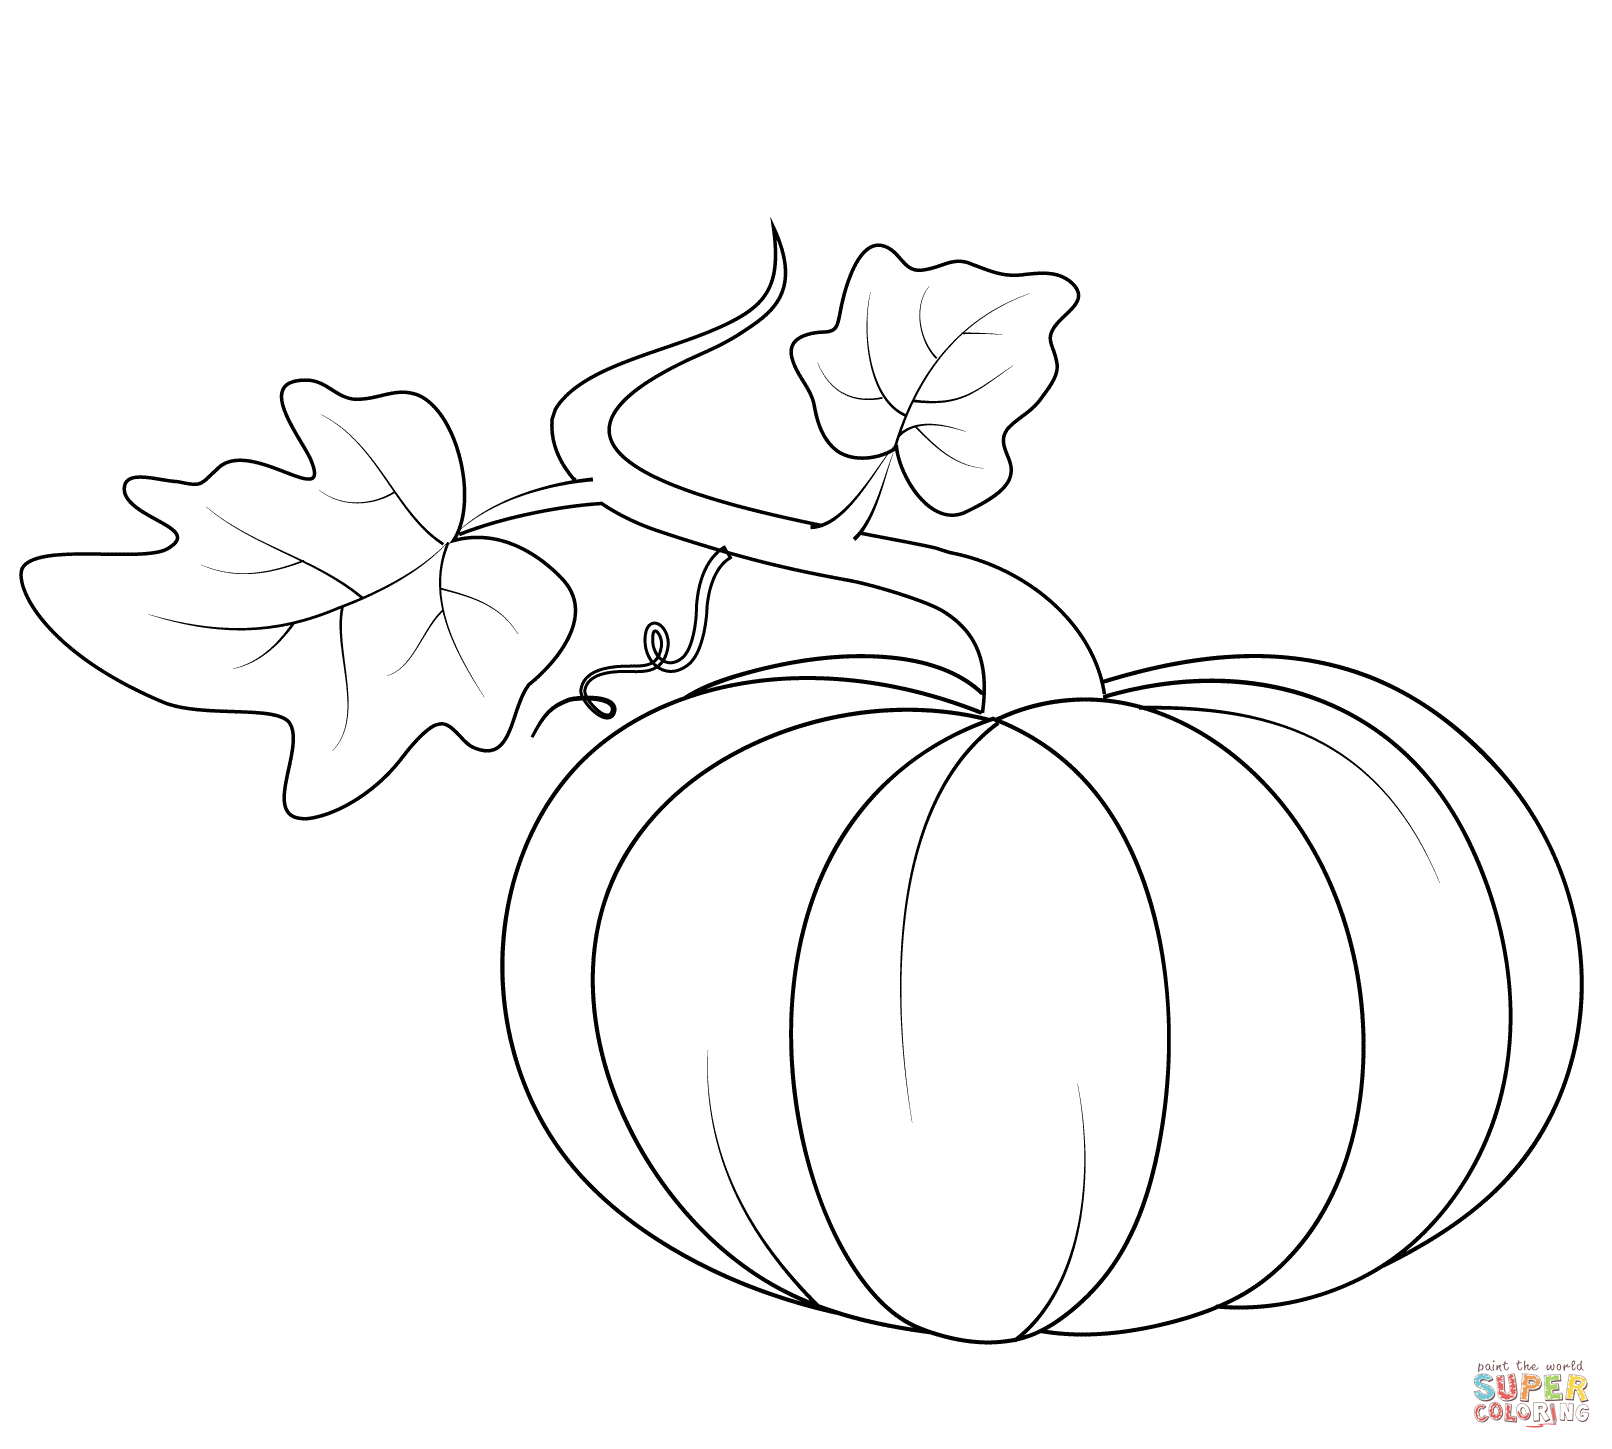 Coloring Page Of Pumpkin Pumpkin With Leaves Coloring Page Free Printable Coloring Pages